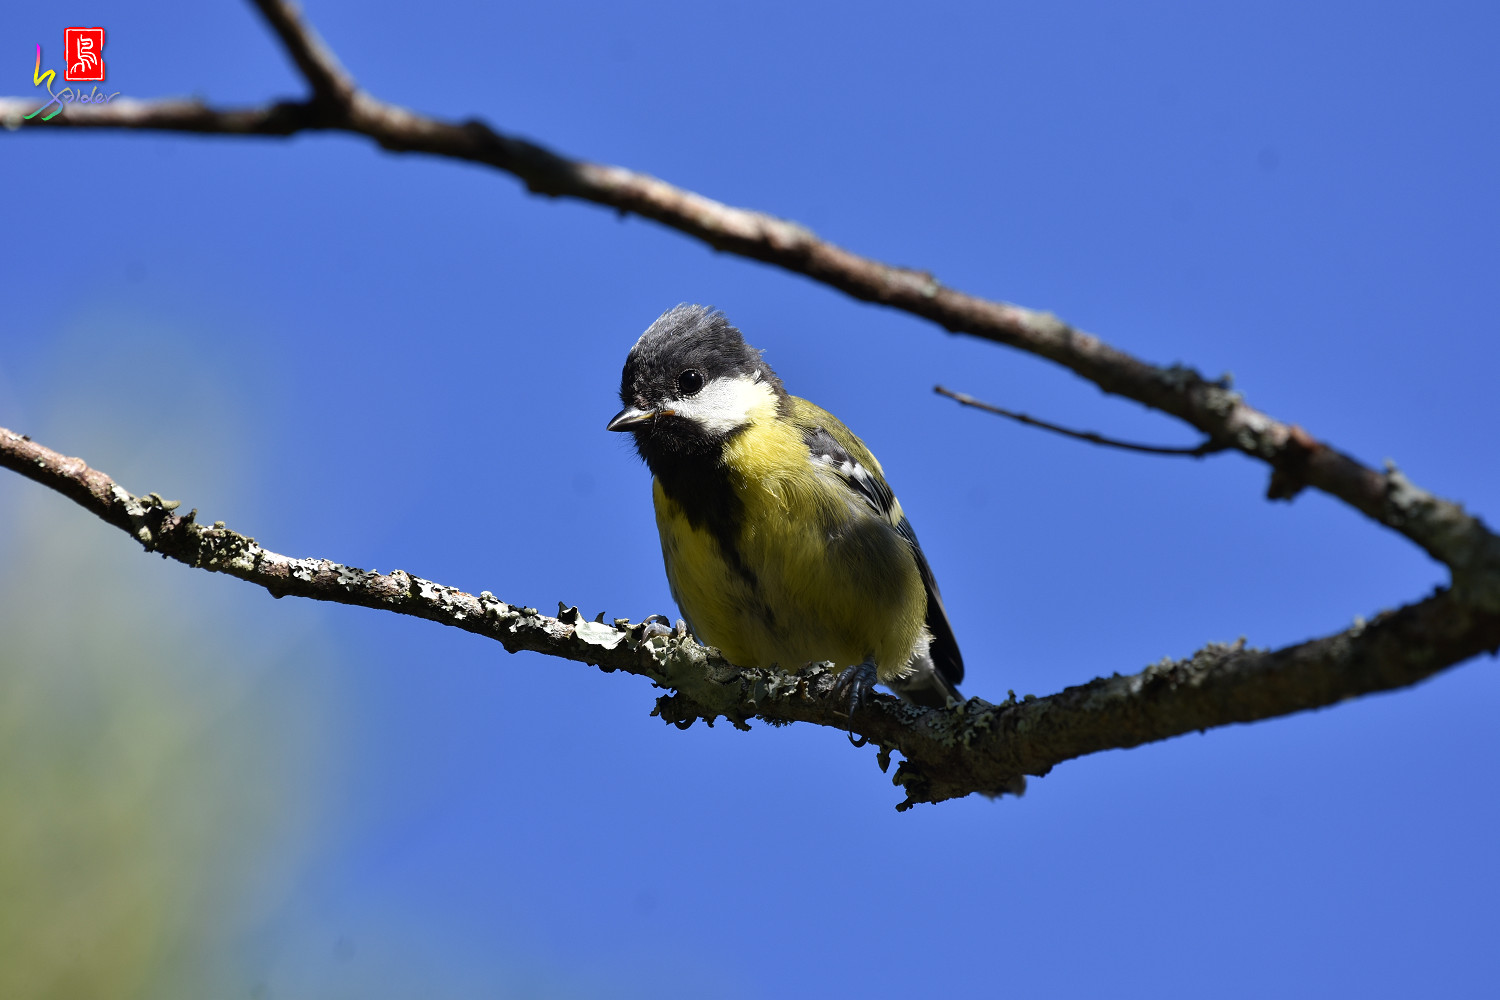 Green-backed_Tit_0494